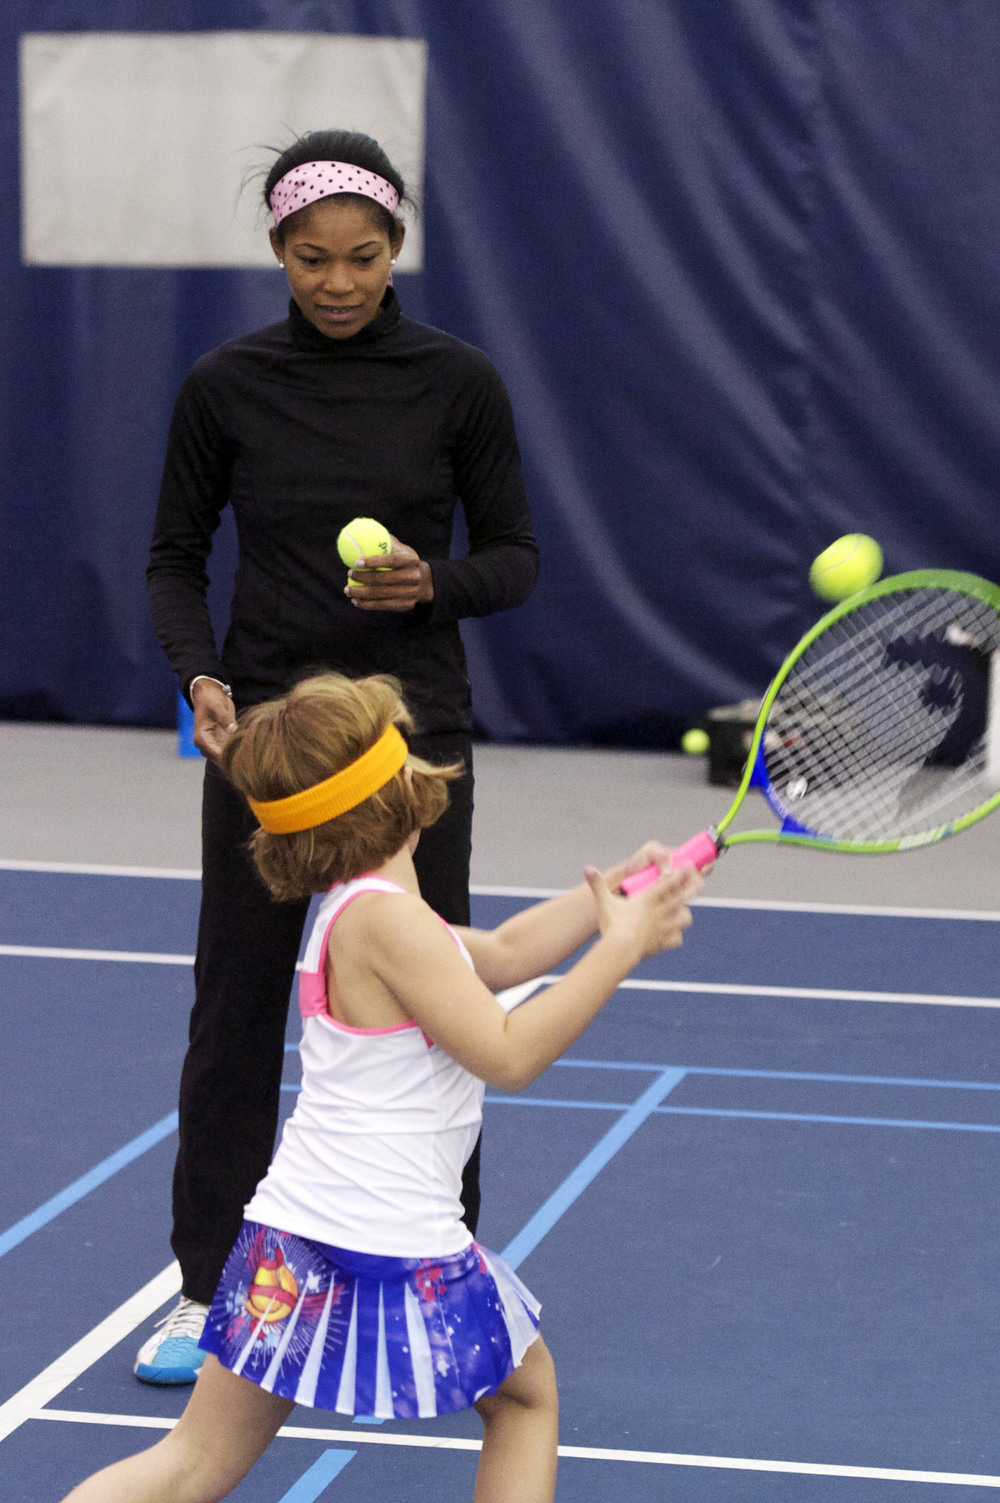 Yates offers private and group tennis and squash lessons for children of all ages and levels.